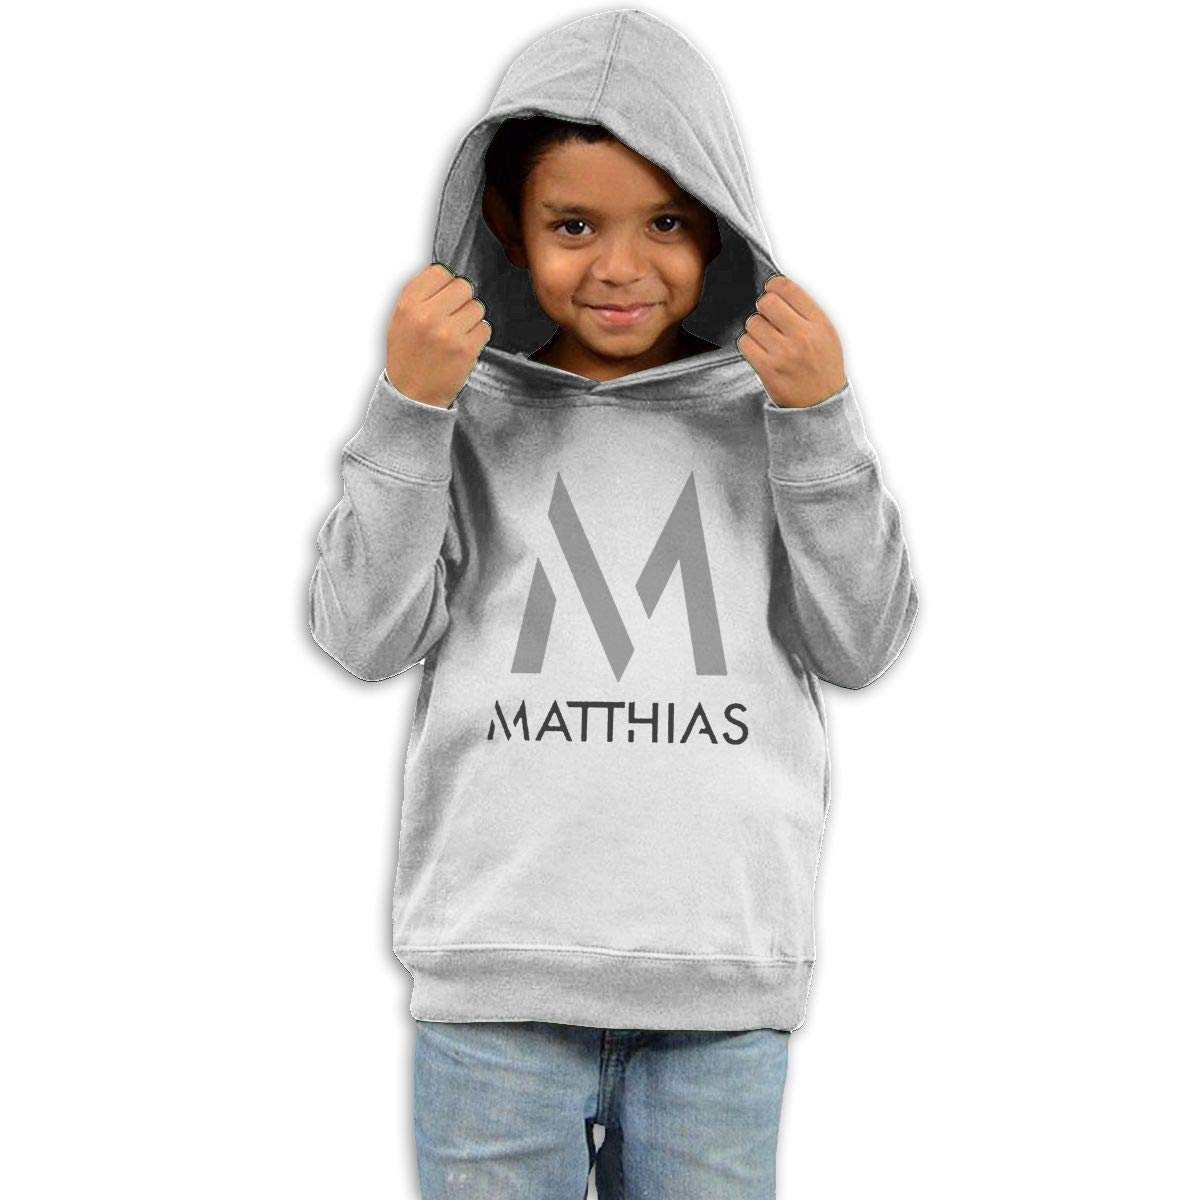 Stacy J. Payne Kids Matthias Lovely Hoodies39 White